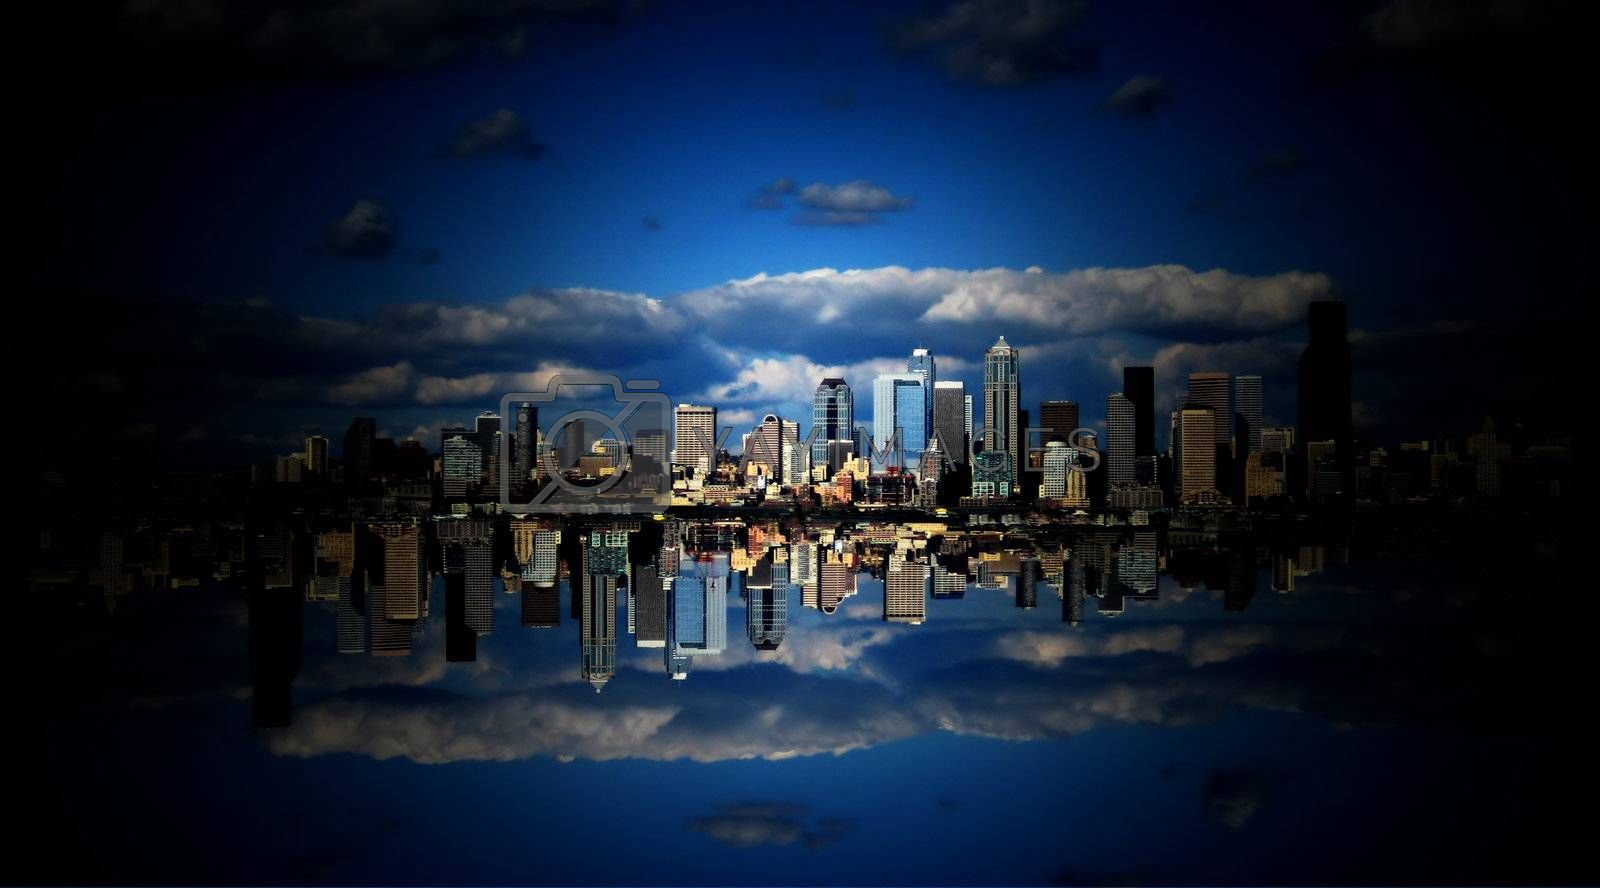 Sky City in the Clouds by mwp1969